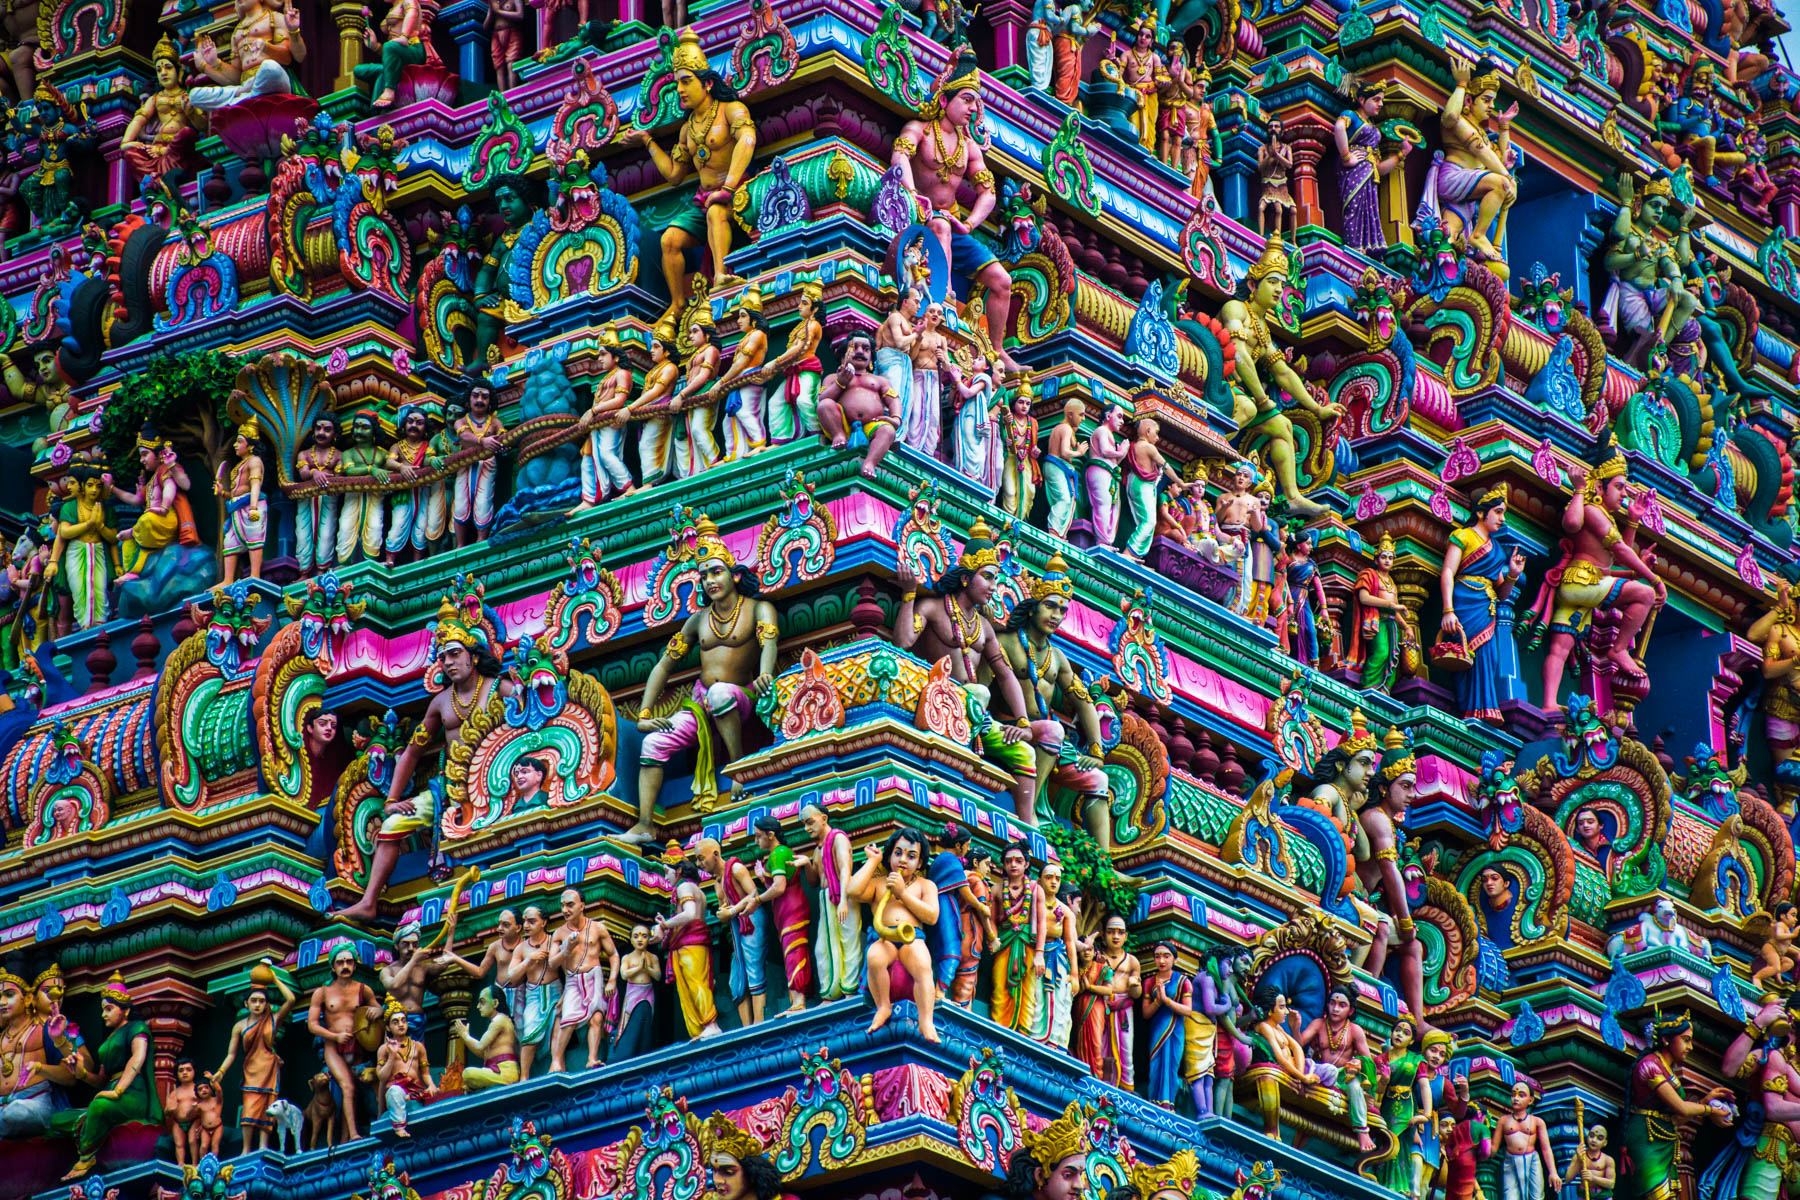 How much it costs to go backpacking in South India - Kapaleeshwar temple in Chennai, Tamil Nadu, India - Lost With Purpose